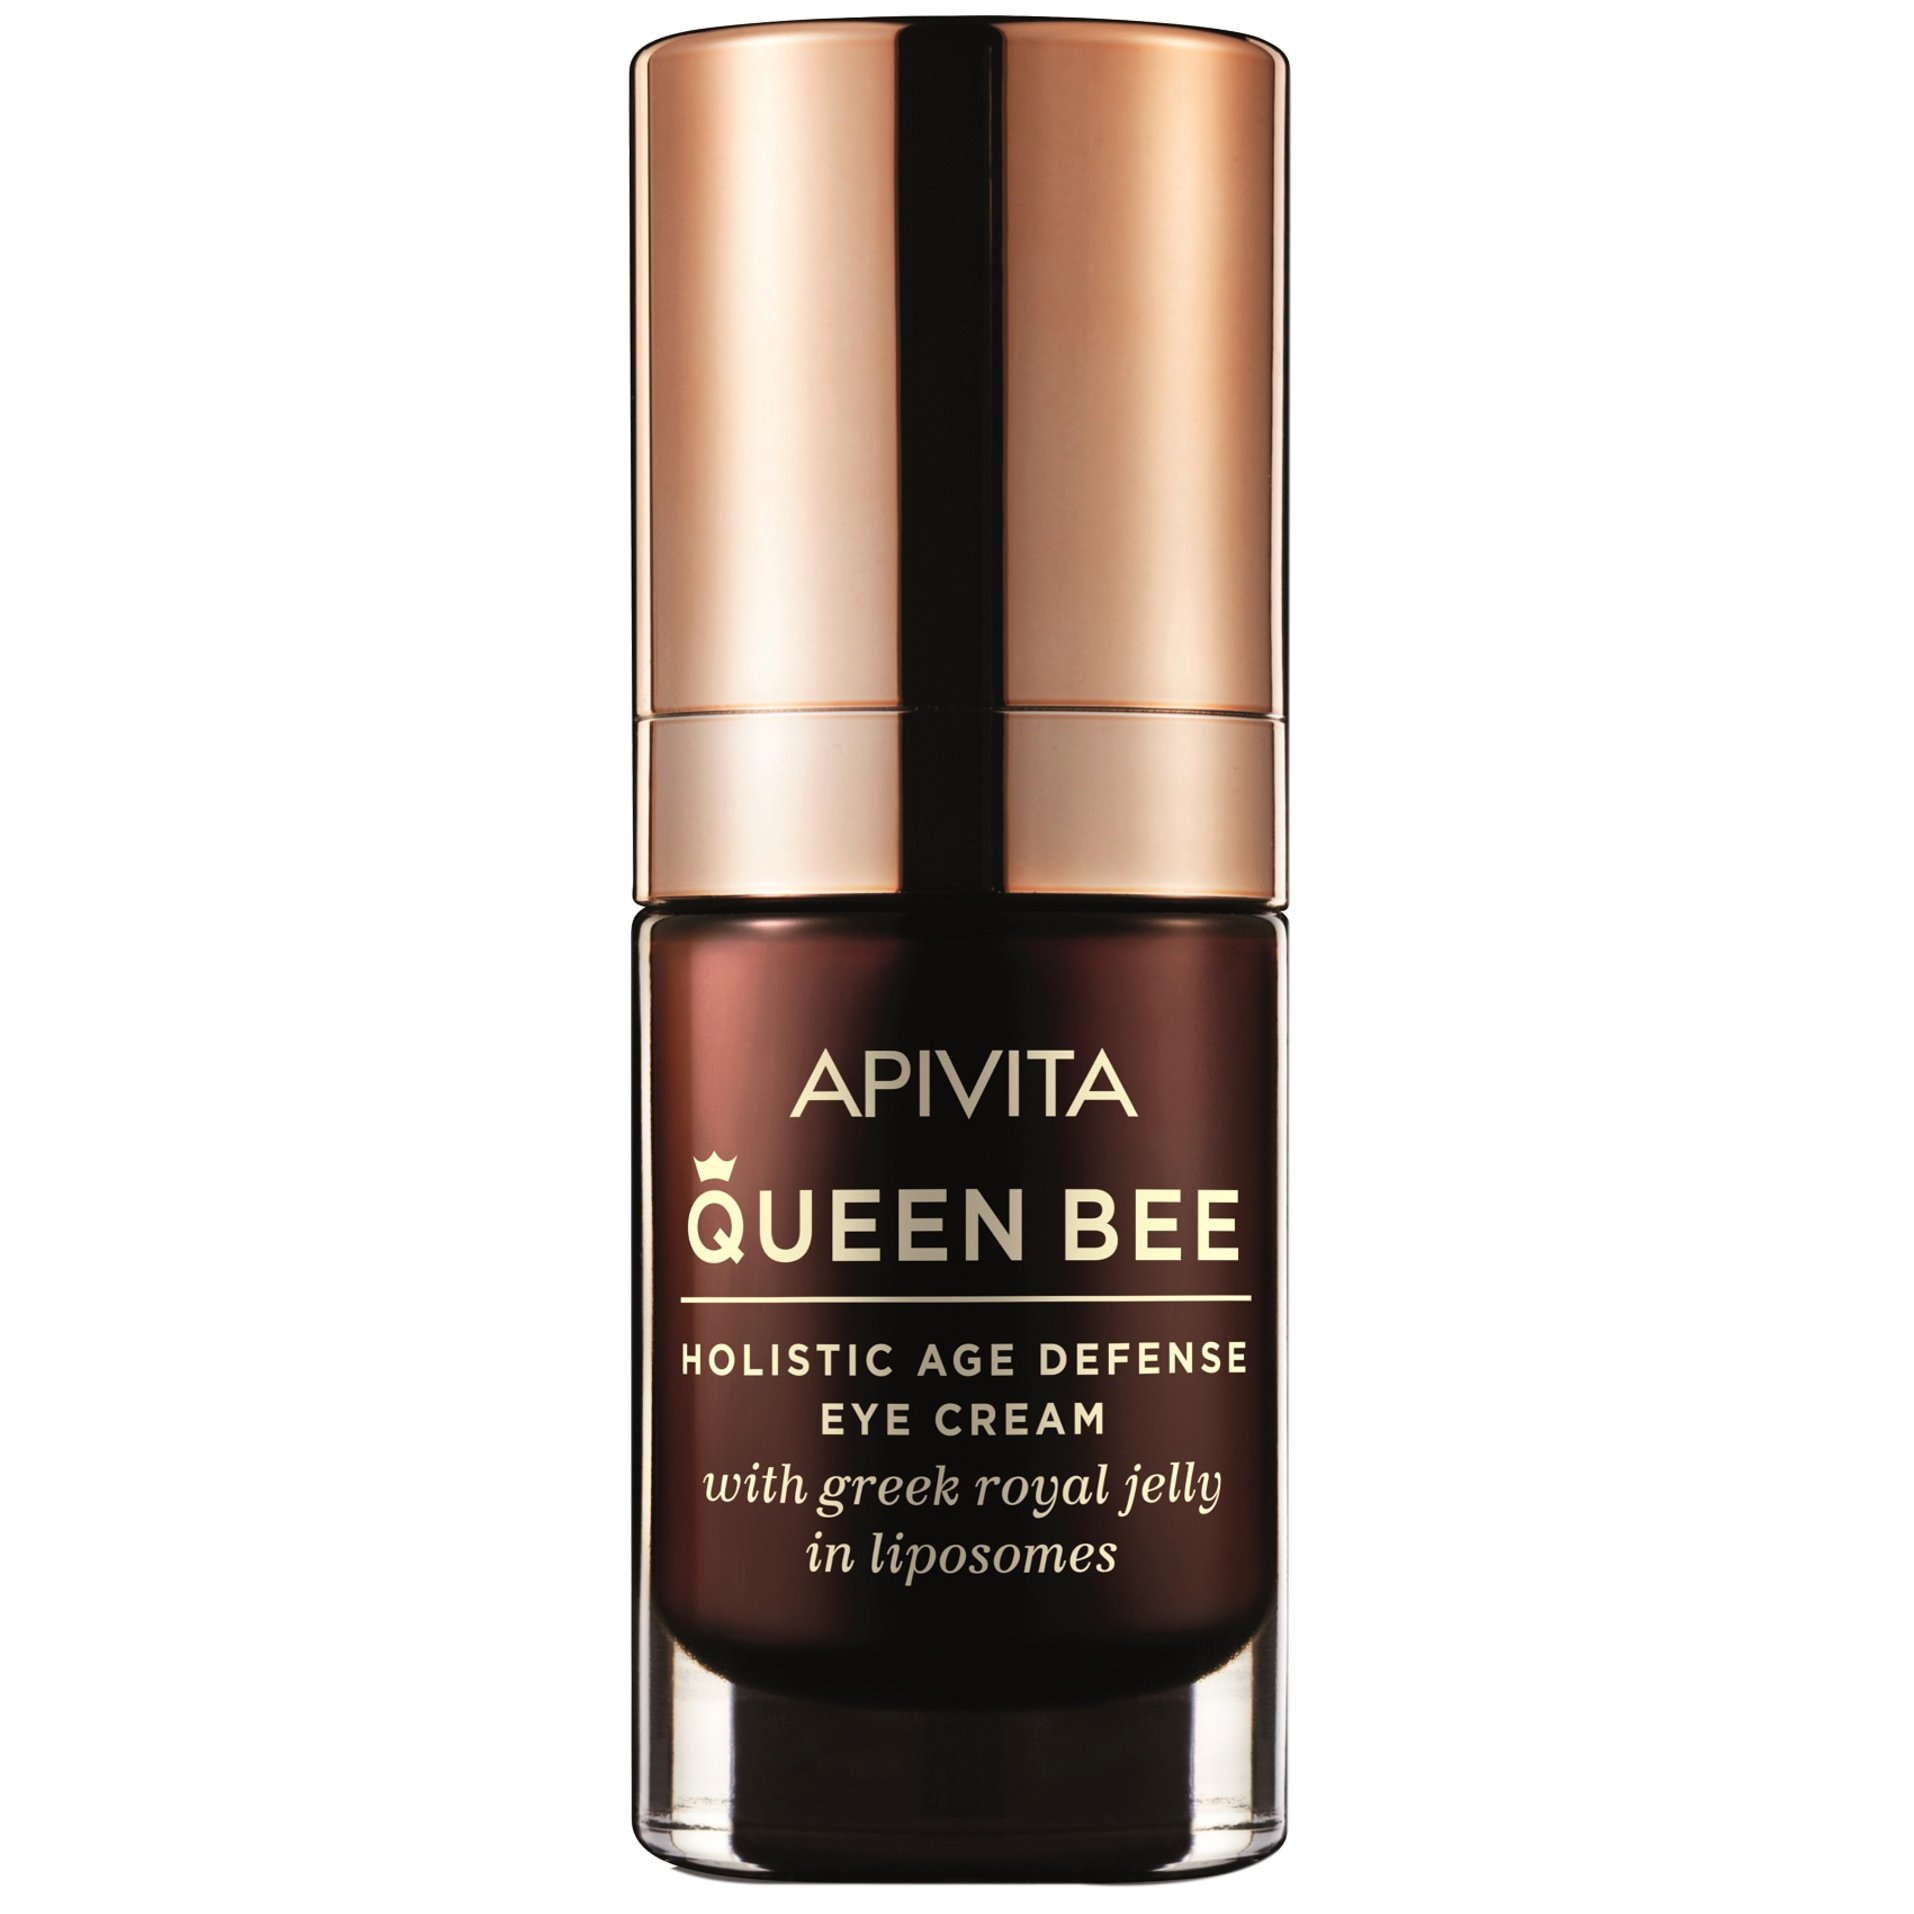 Queen Bee Holistic Age Defence Eye Cream With Greek Royal Jelly In Liposomes 15ml – Apivita,Κρέμα Ματιών Ολιστικής Αντιγήρανσης